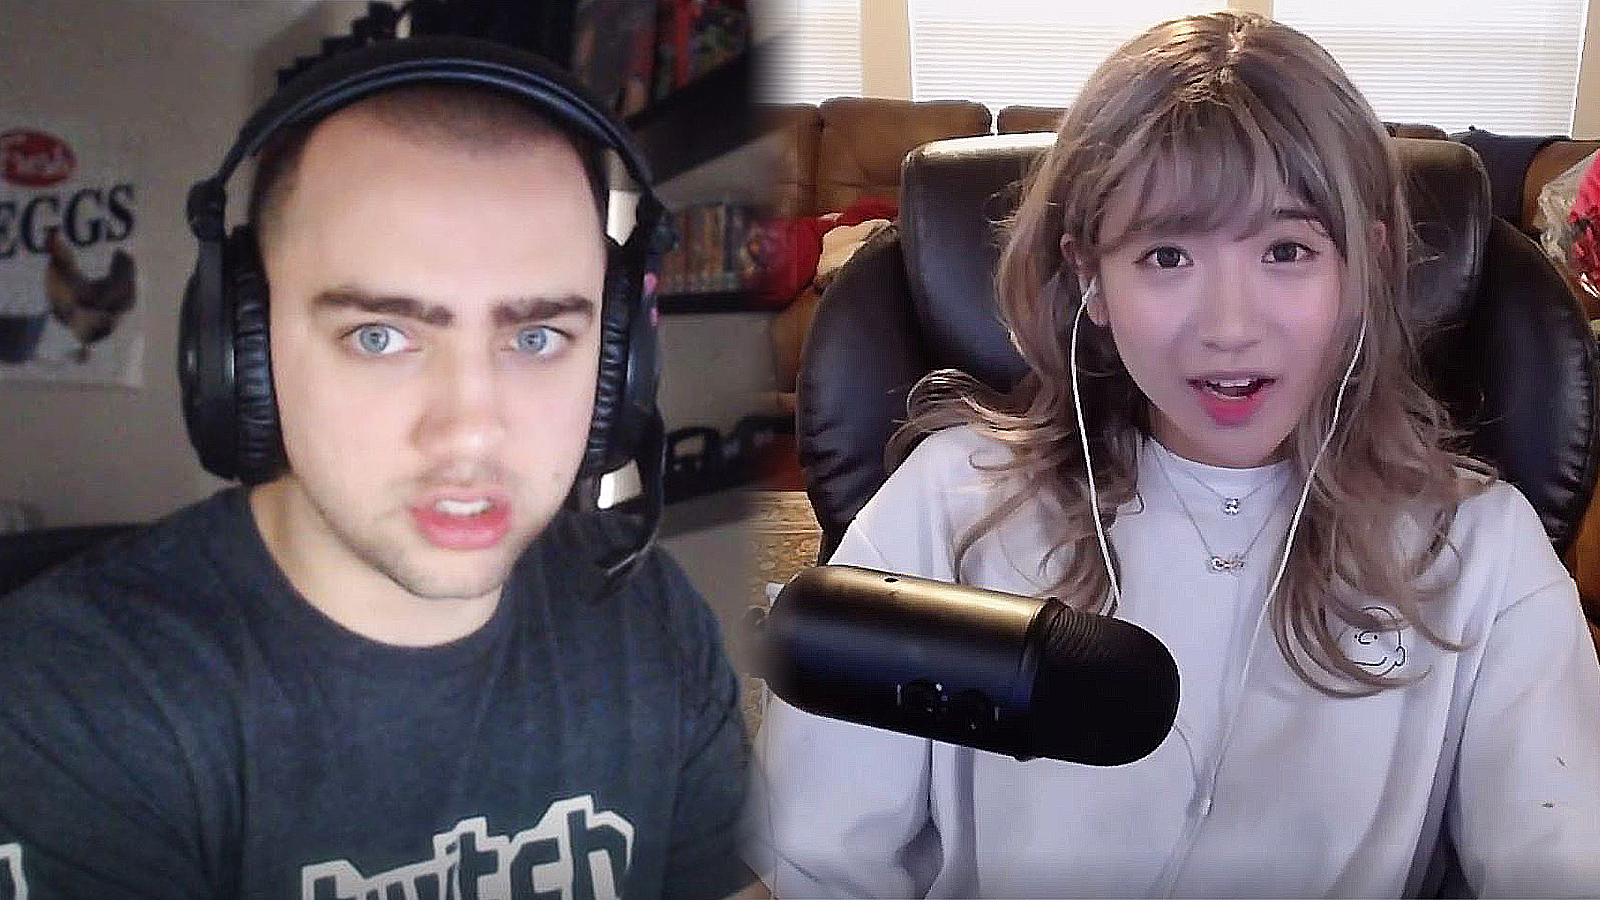 Mizkif asks fans to stop harassing Jinny